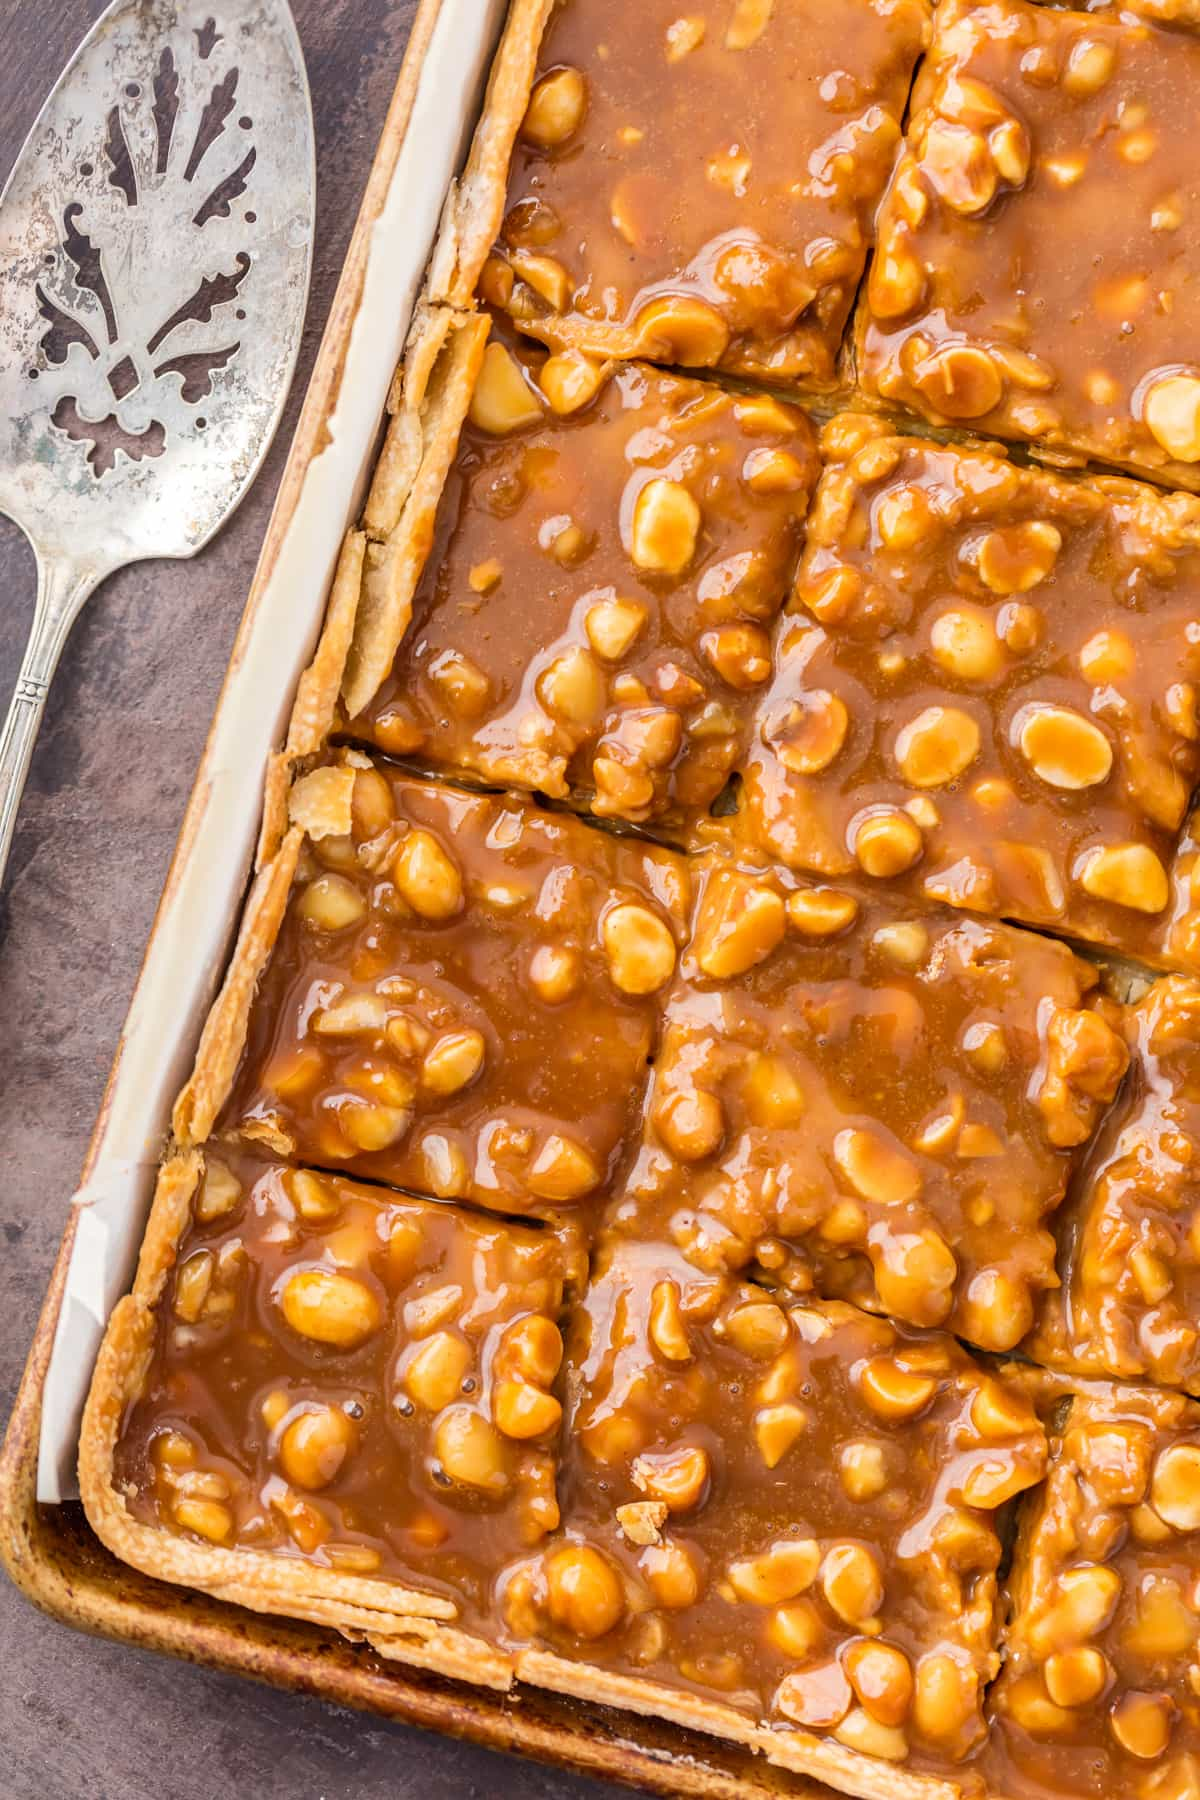 Caramel Macadamia Nut Pumpkin Pie Bars recipe in a baking sheet